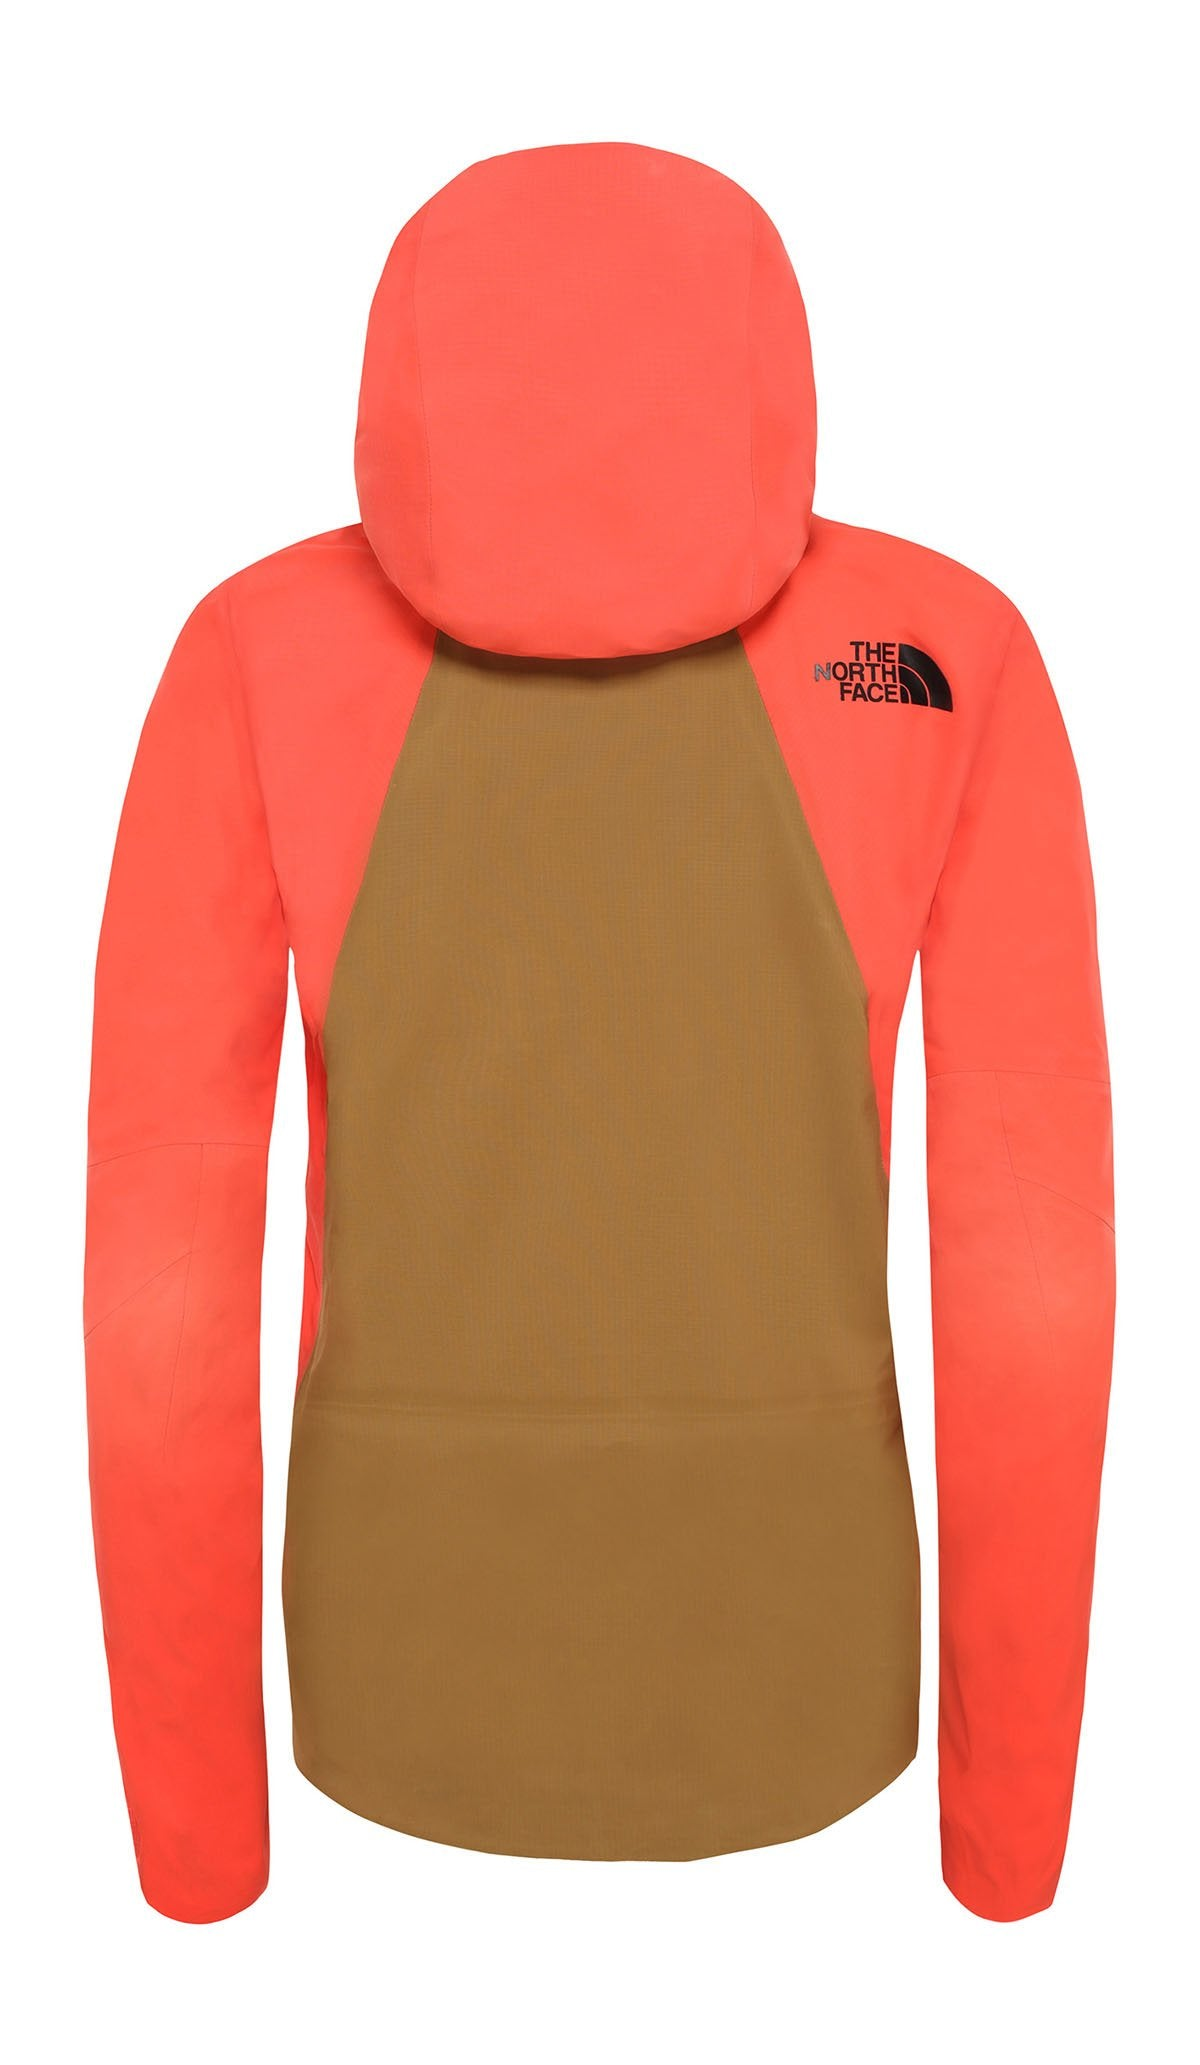 The North Face Womens Purist Ski Jacket